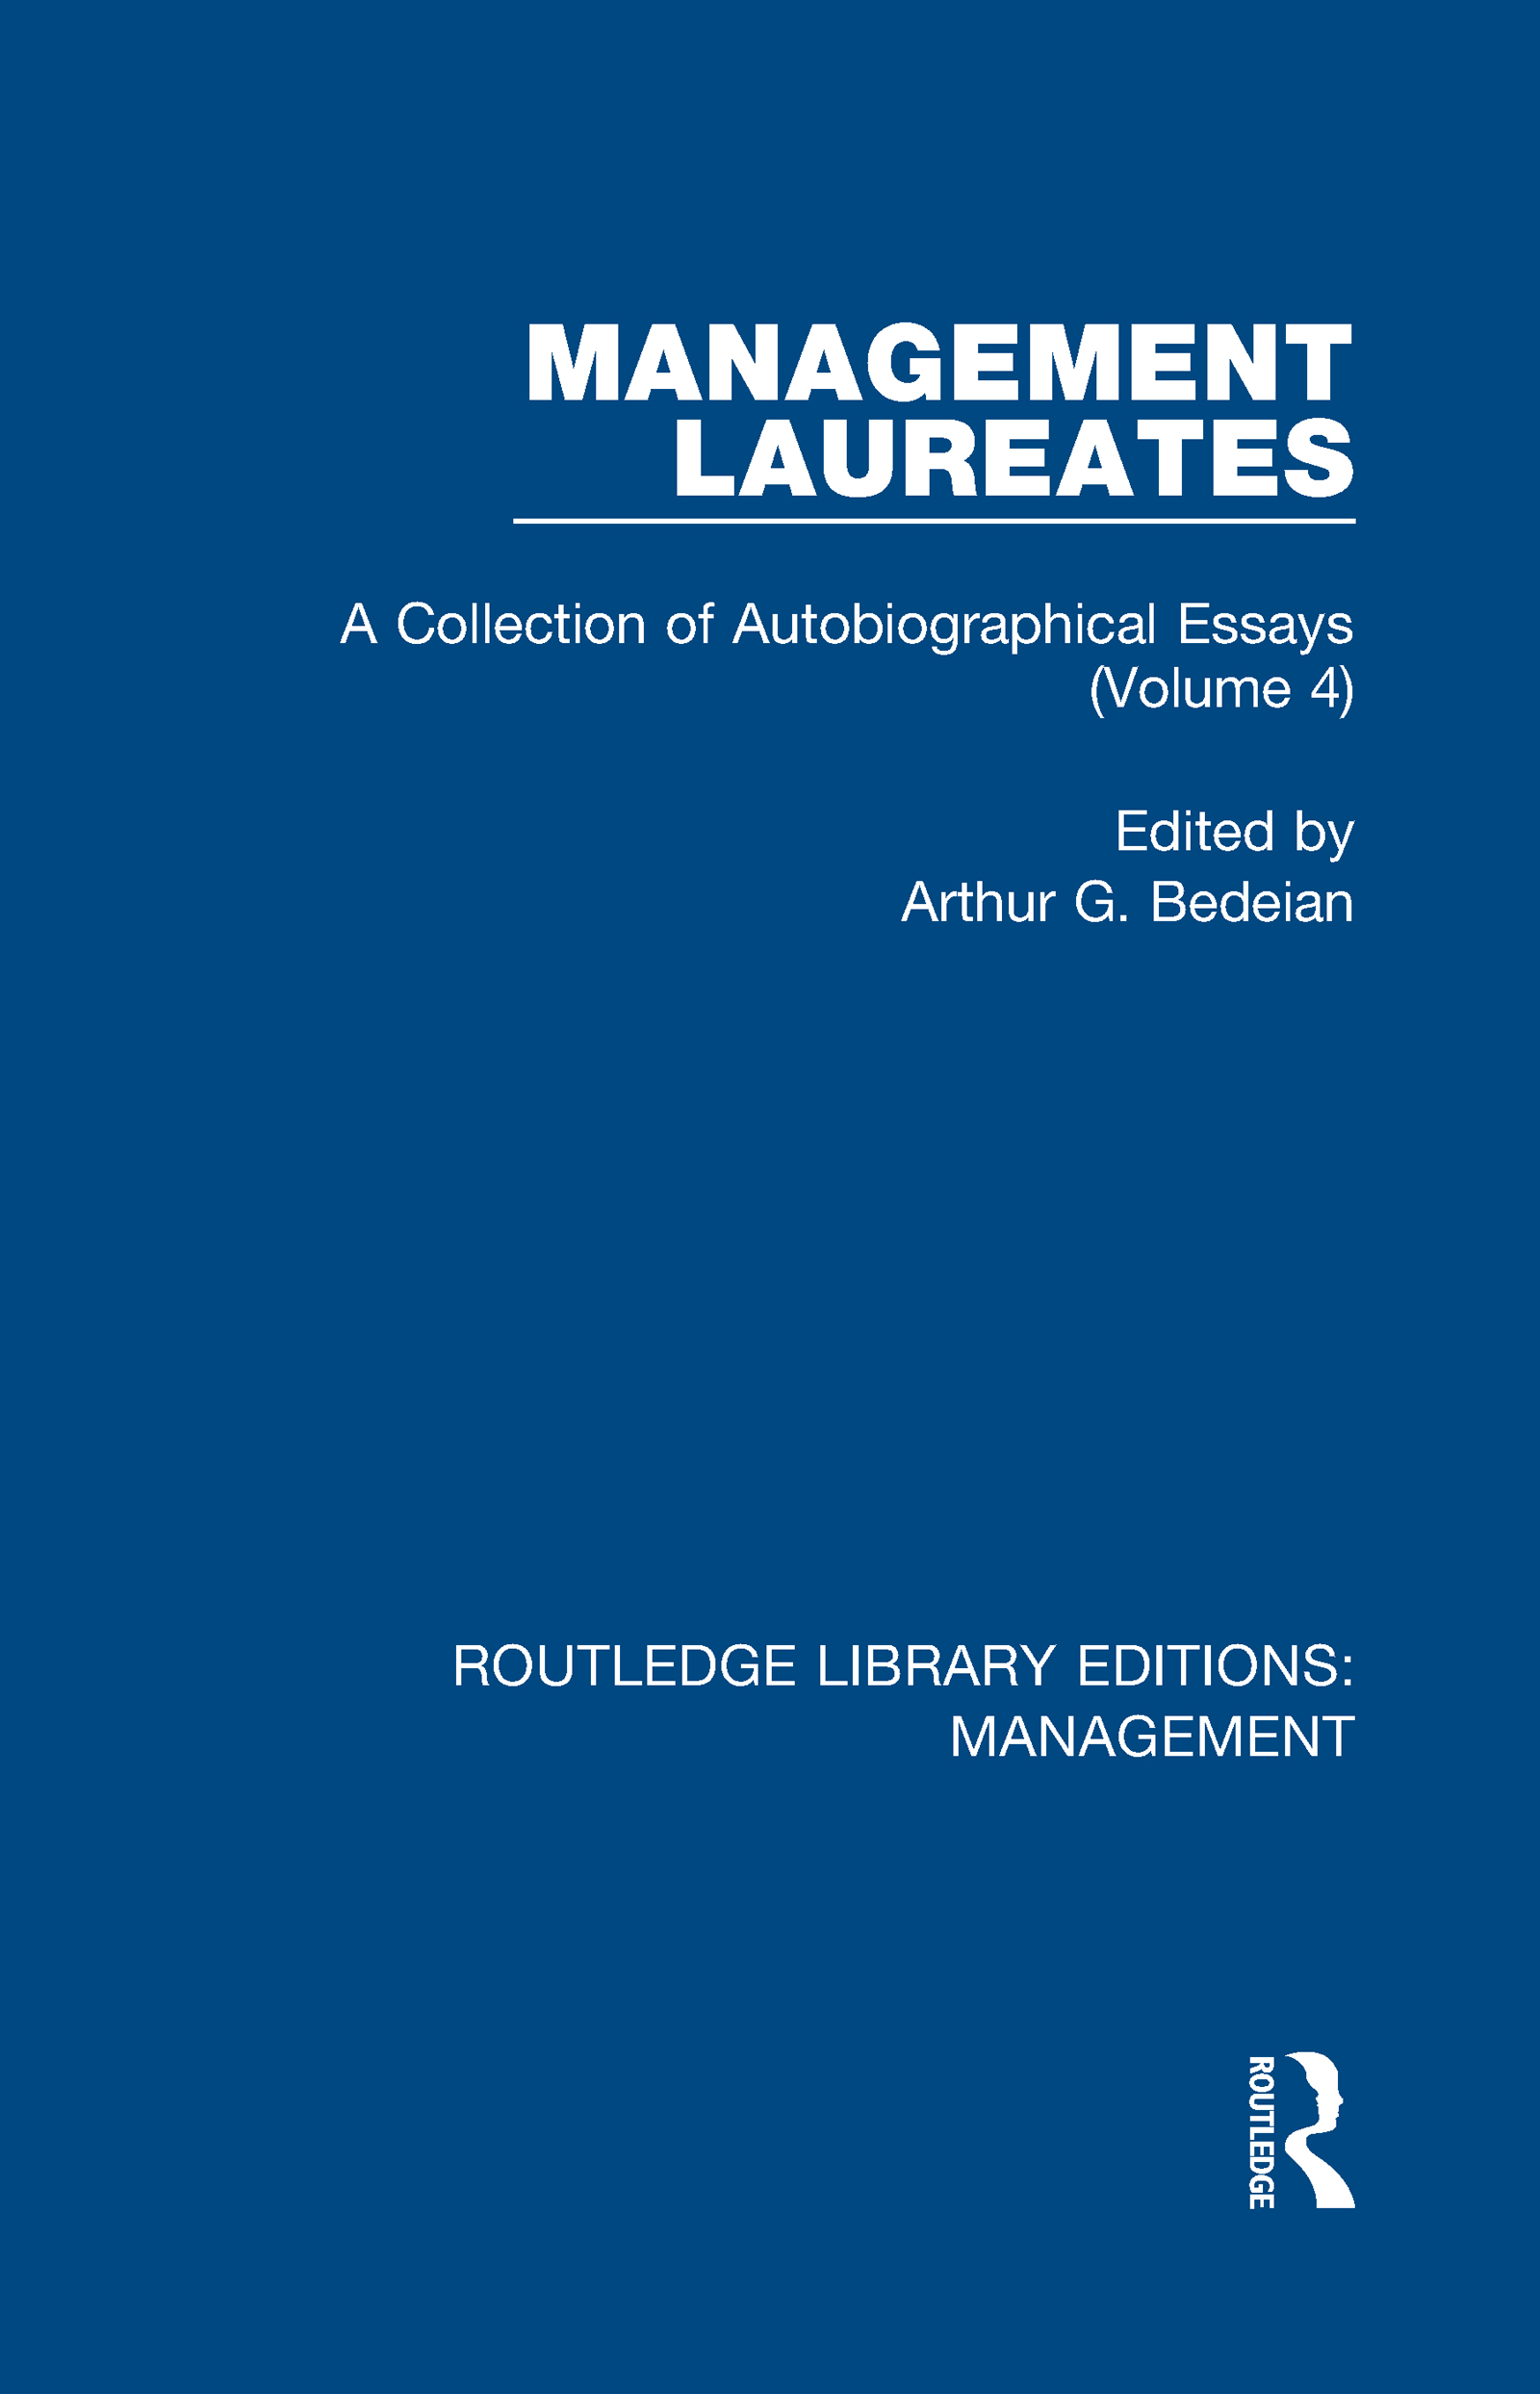 Management Laureates: A Collection of Autobiographical Essays (Volume 4) book cover